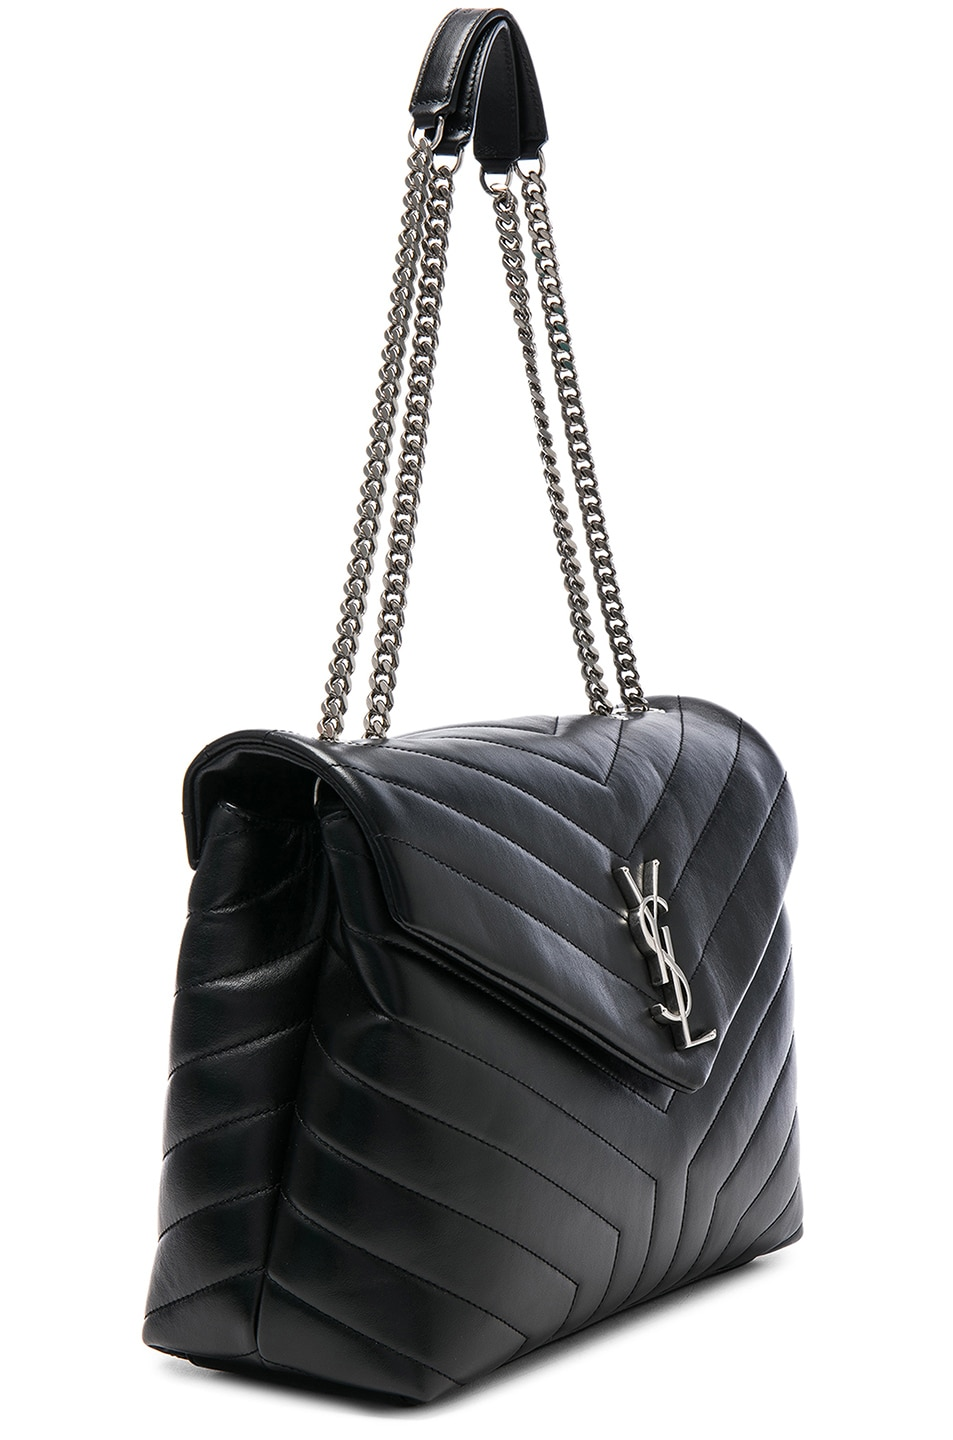 Image 4 of Saint Laurent Medium Supple Monogramme Loulou Chain Bag in Black